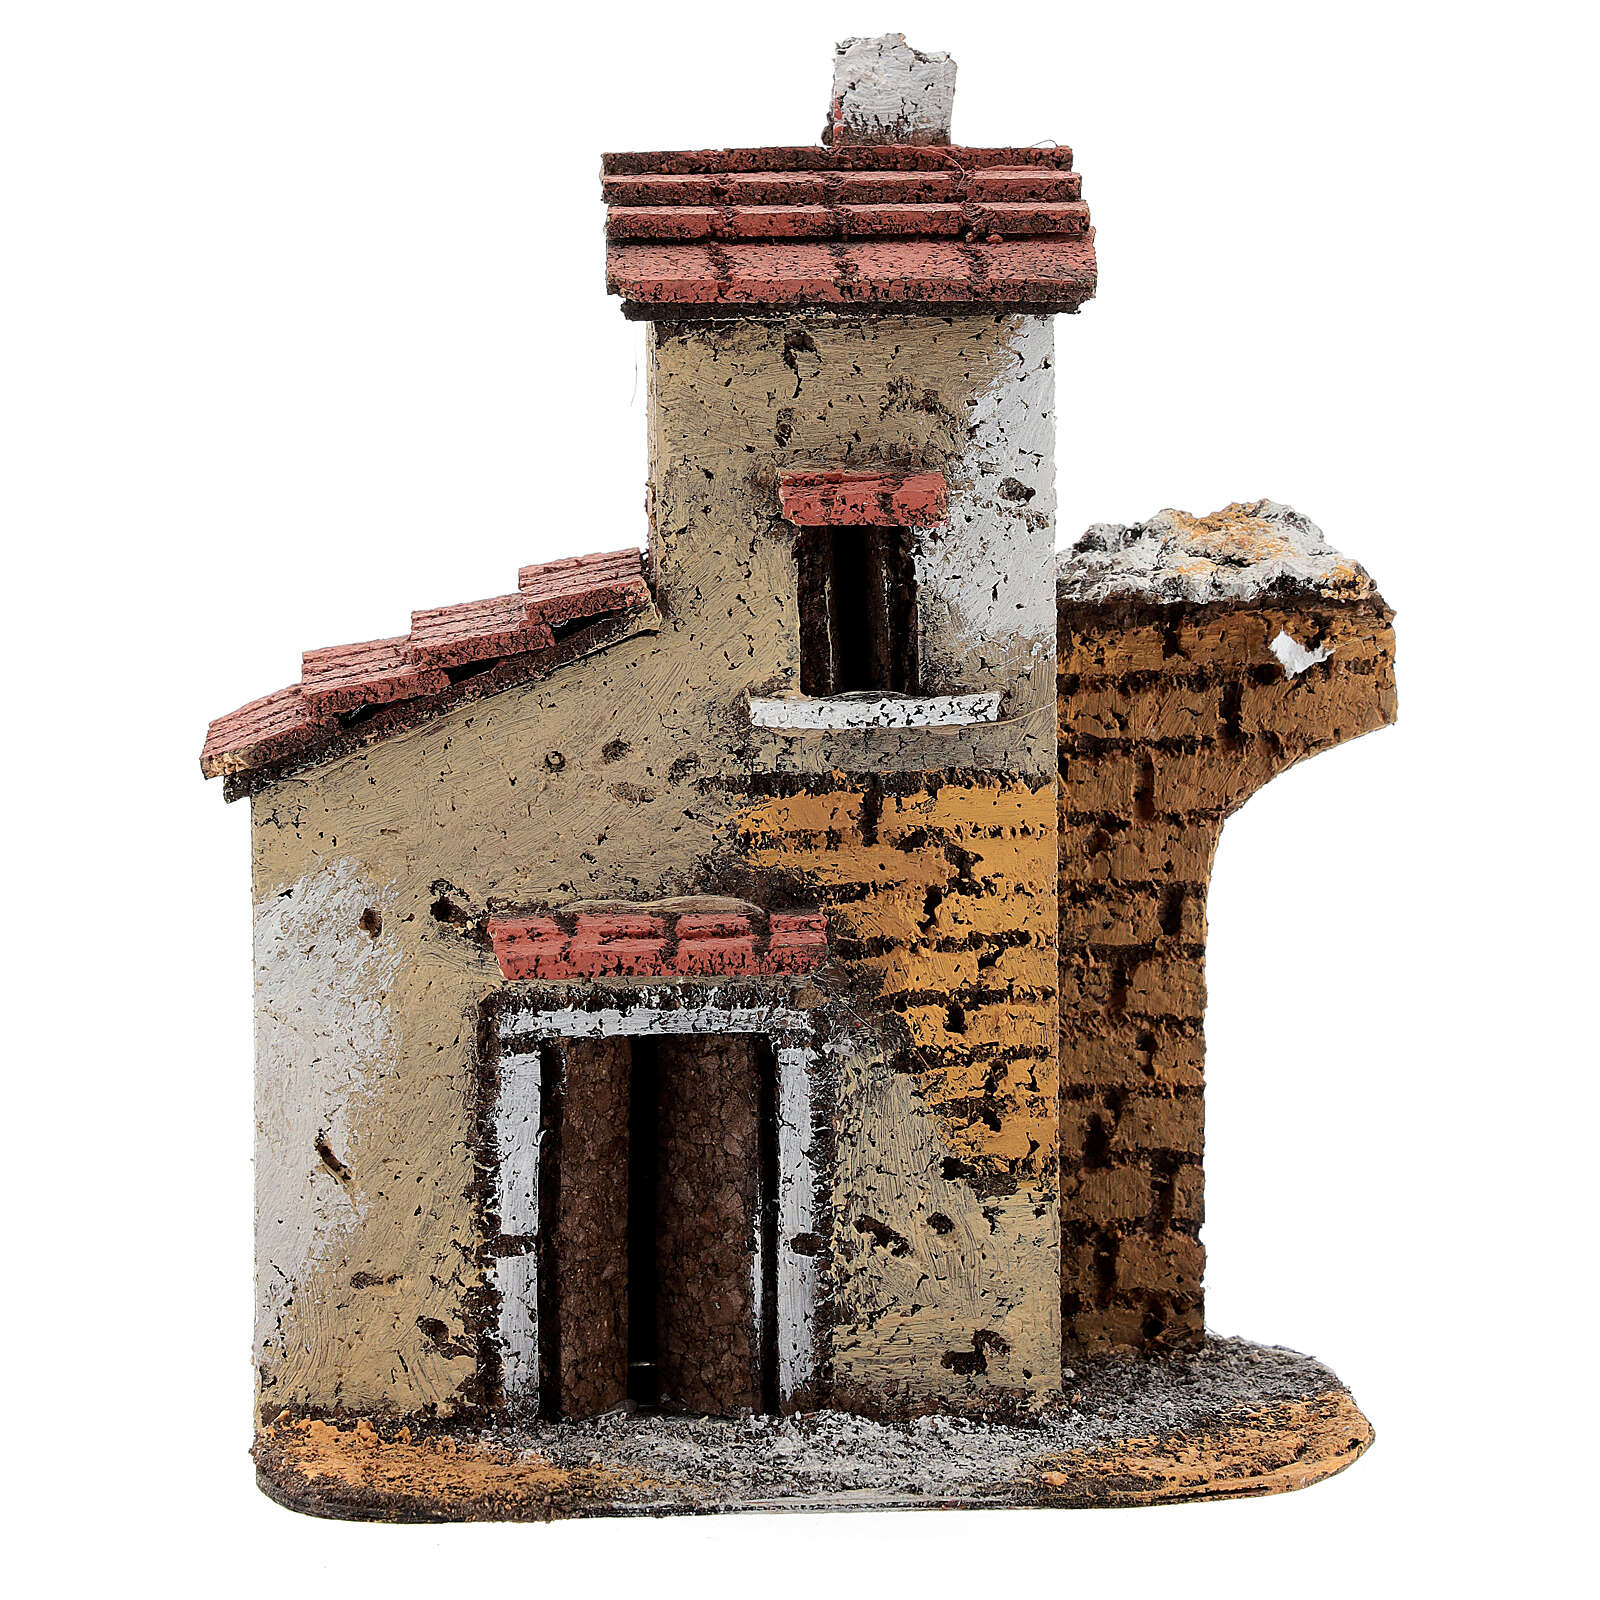 Cork house with ruined arch for Neapolitan Nativity scene 15x15x5 for statues 4-6 cm 4